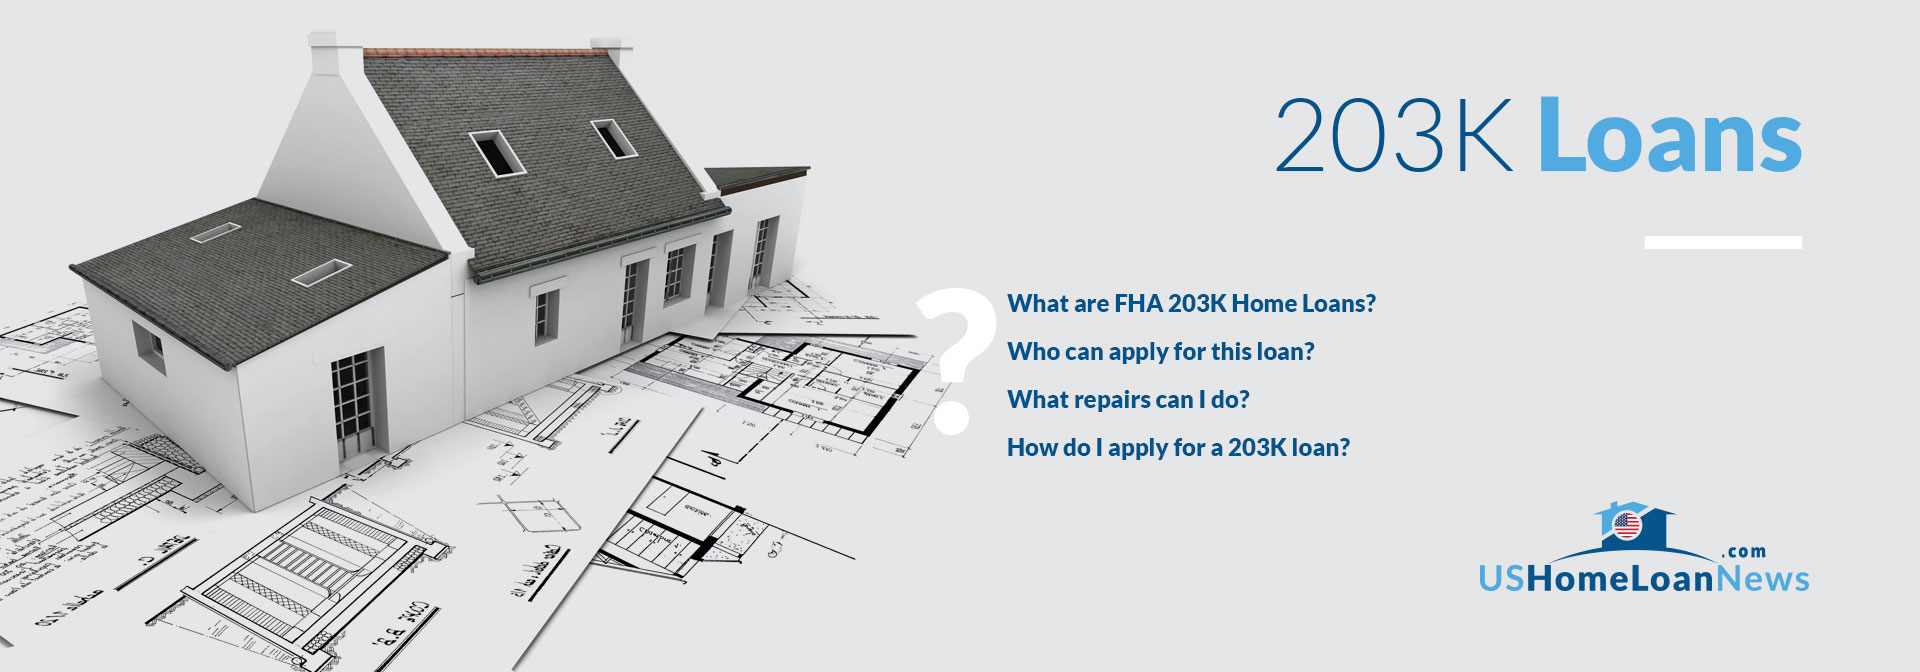 203K – What are FHA 203K Home Loans? by US Home Loan News